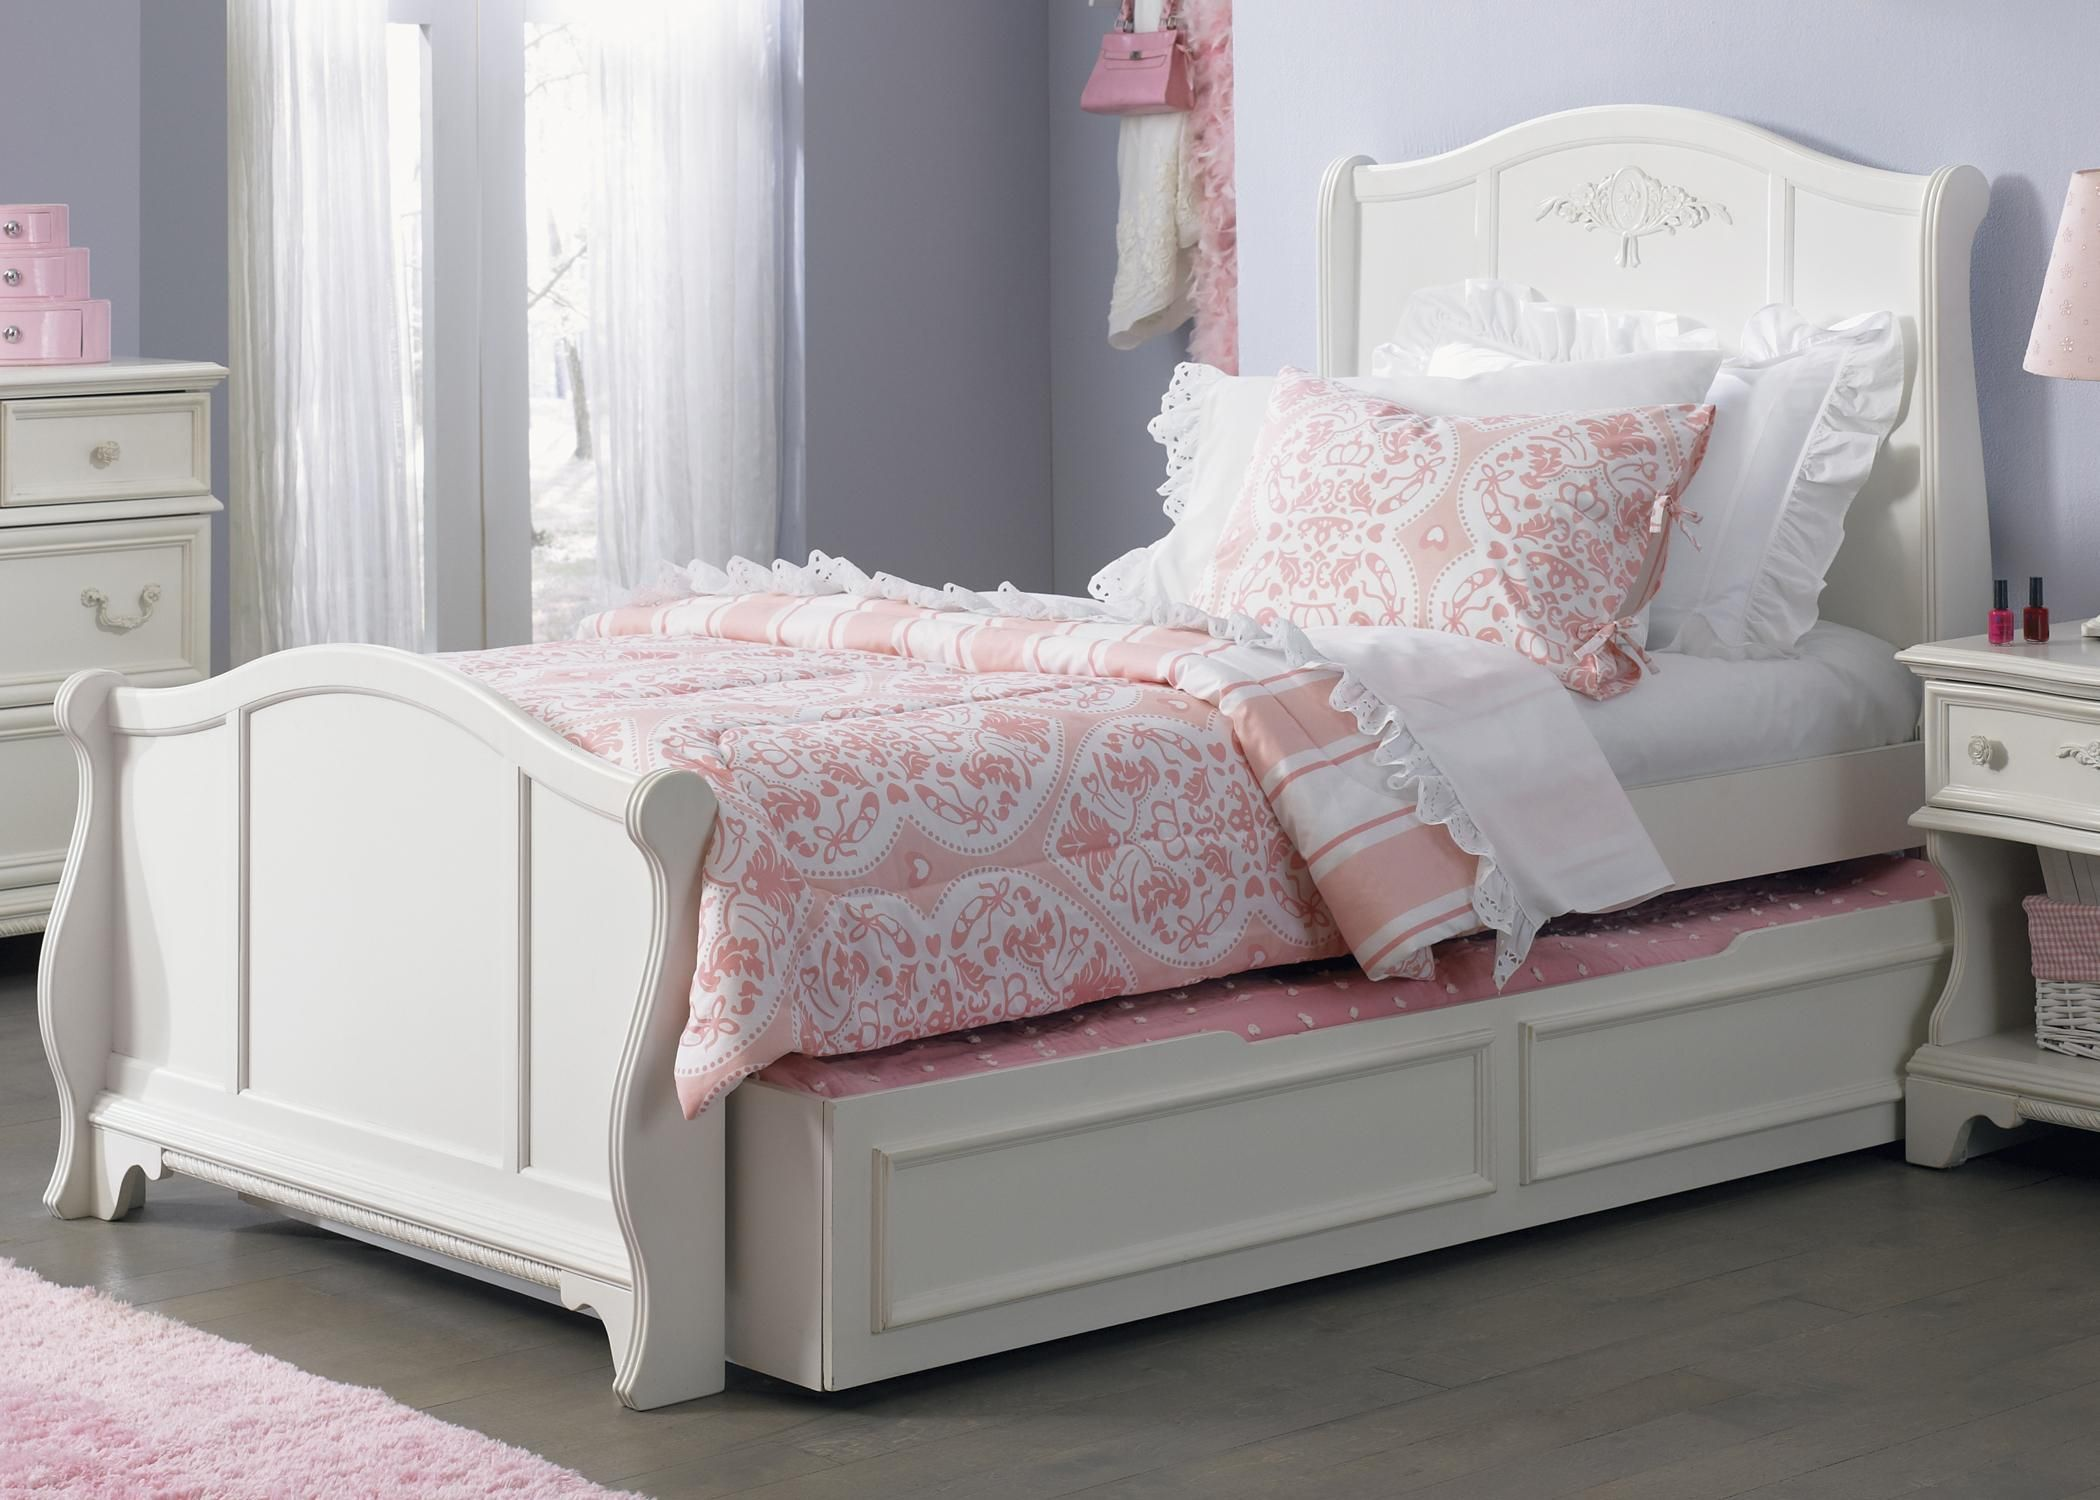 Space Saving Girls Trundle Beds Design  Httpkatrinahousingnetspace